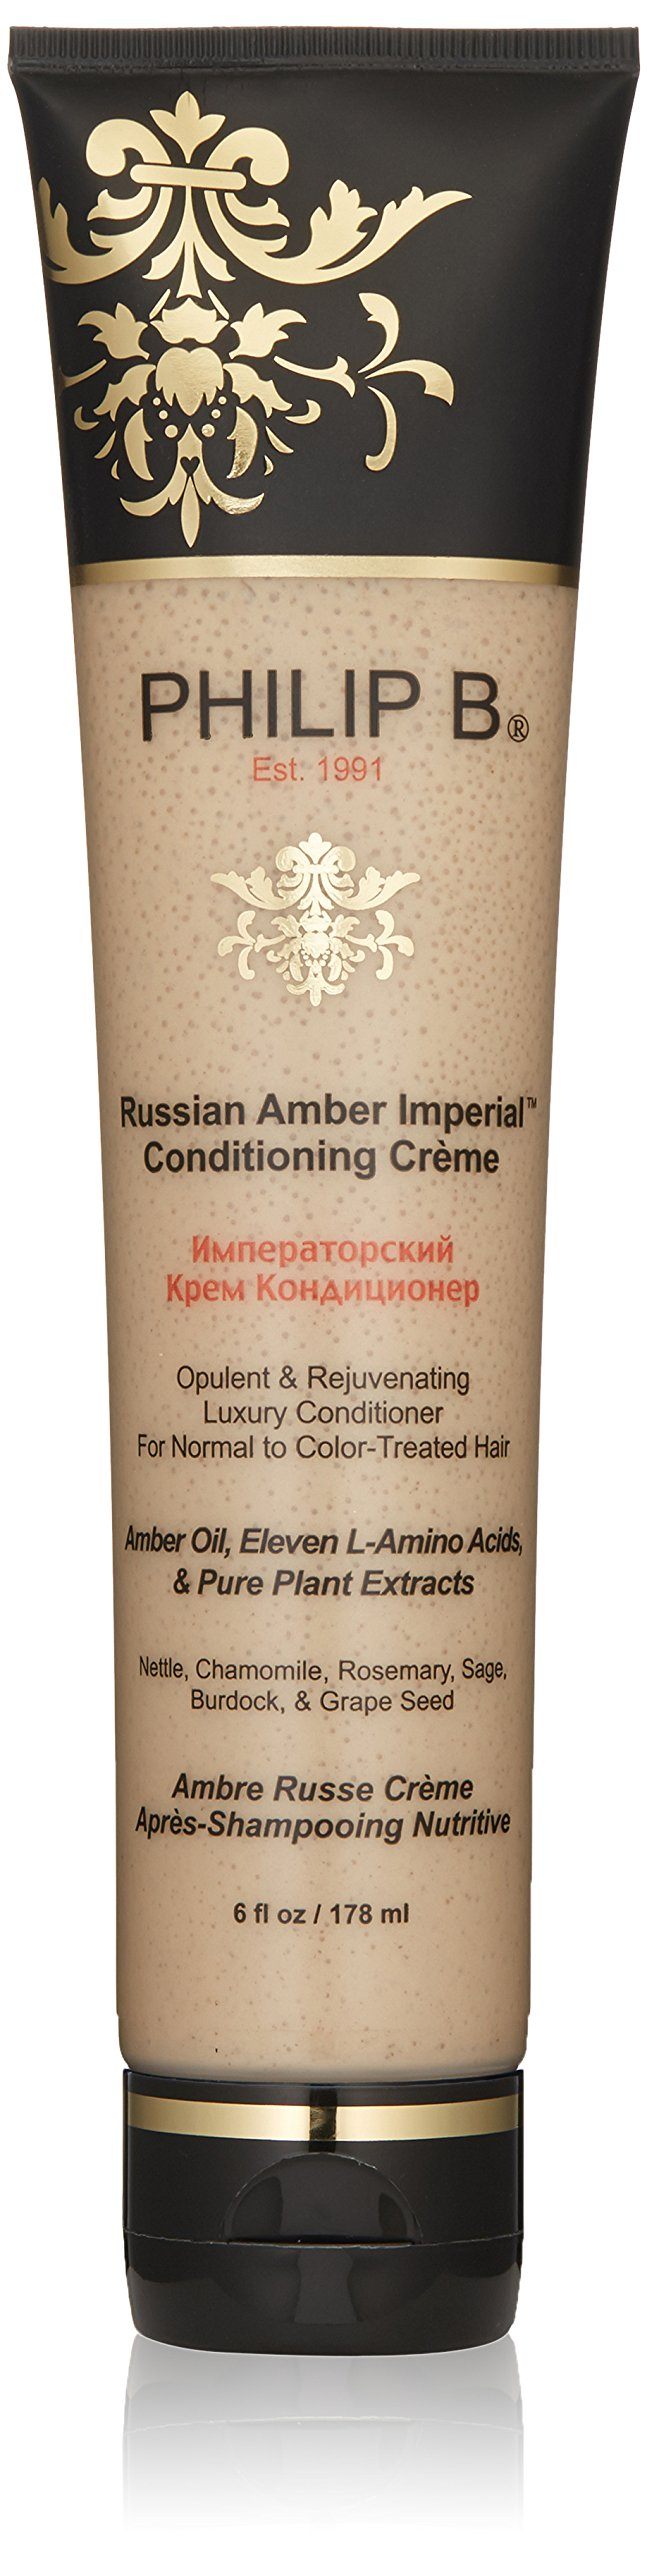 PHILIP B Russian Amber Imperial Conditioning Cream, 6 fl. oz.